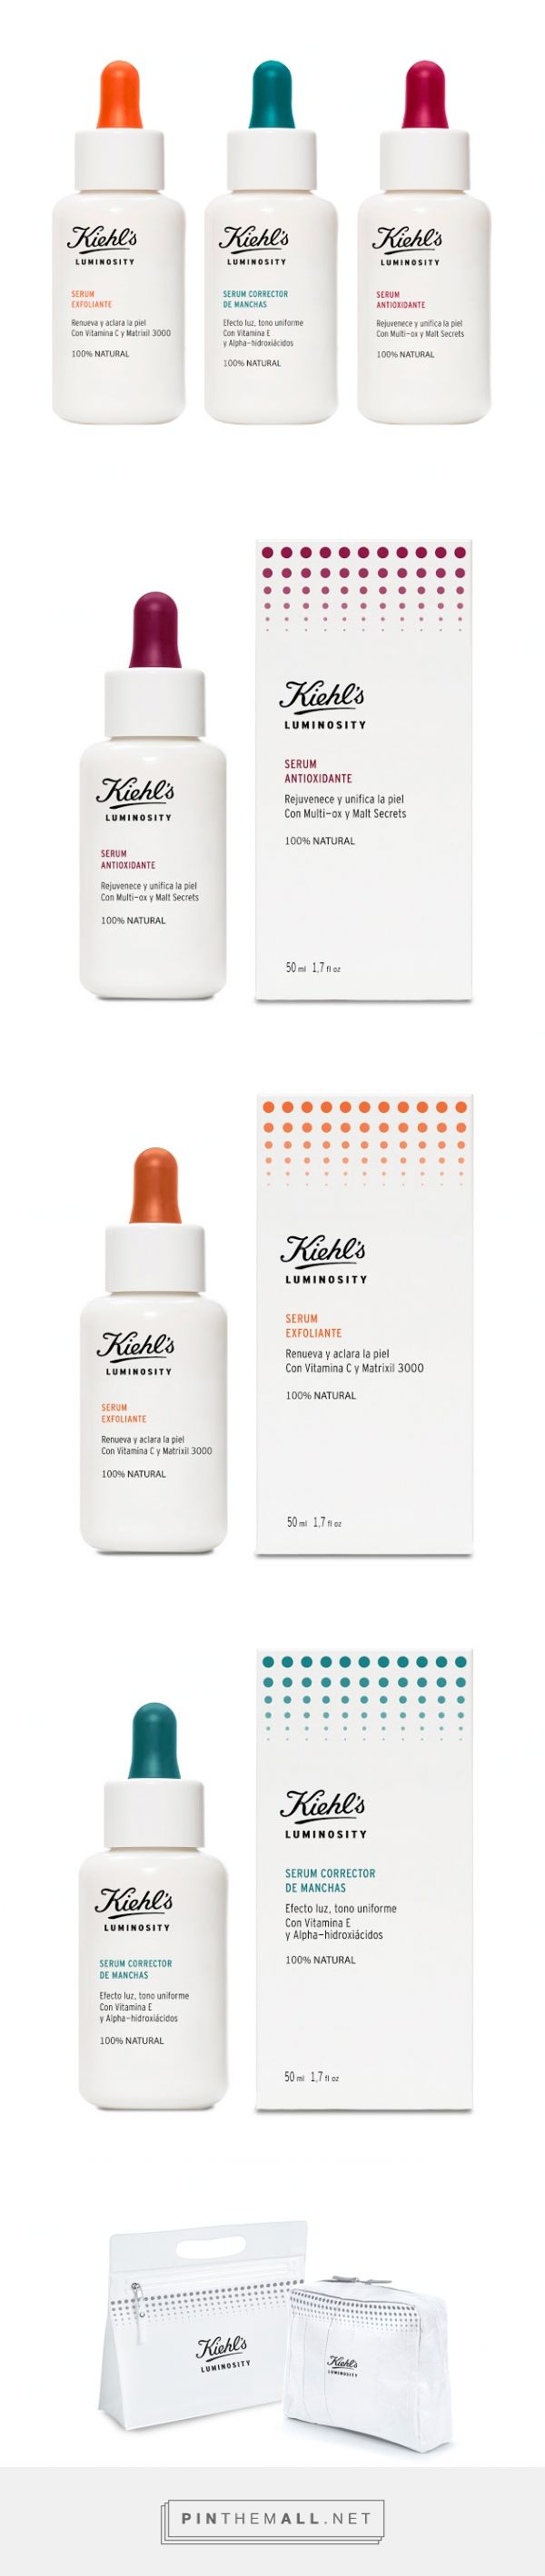 Kiehl's Luminosity - serum